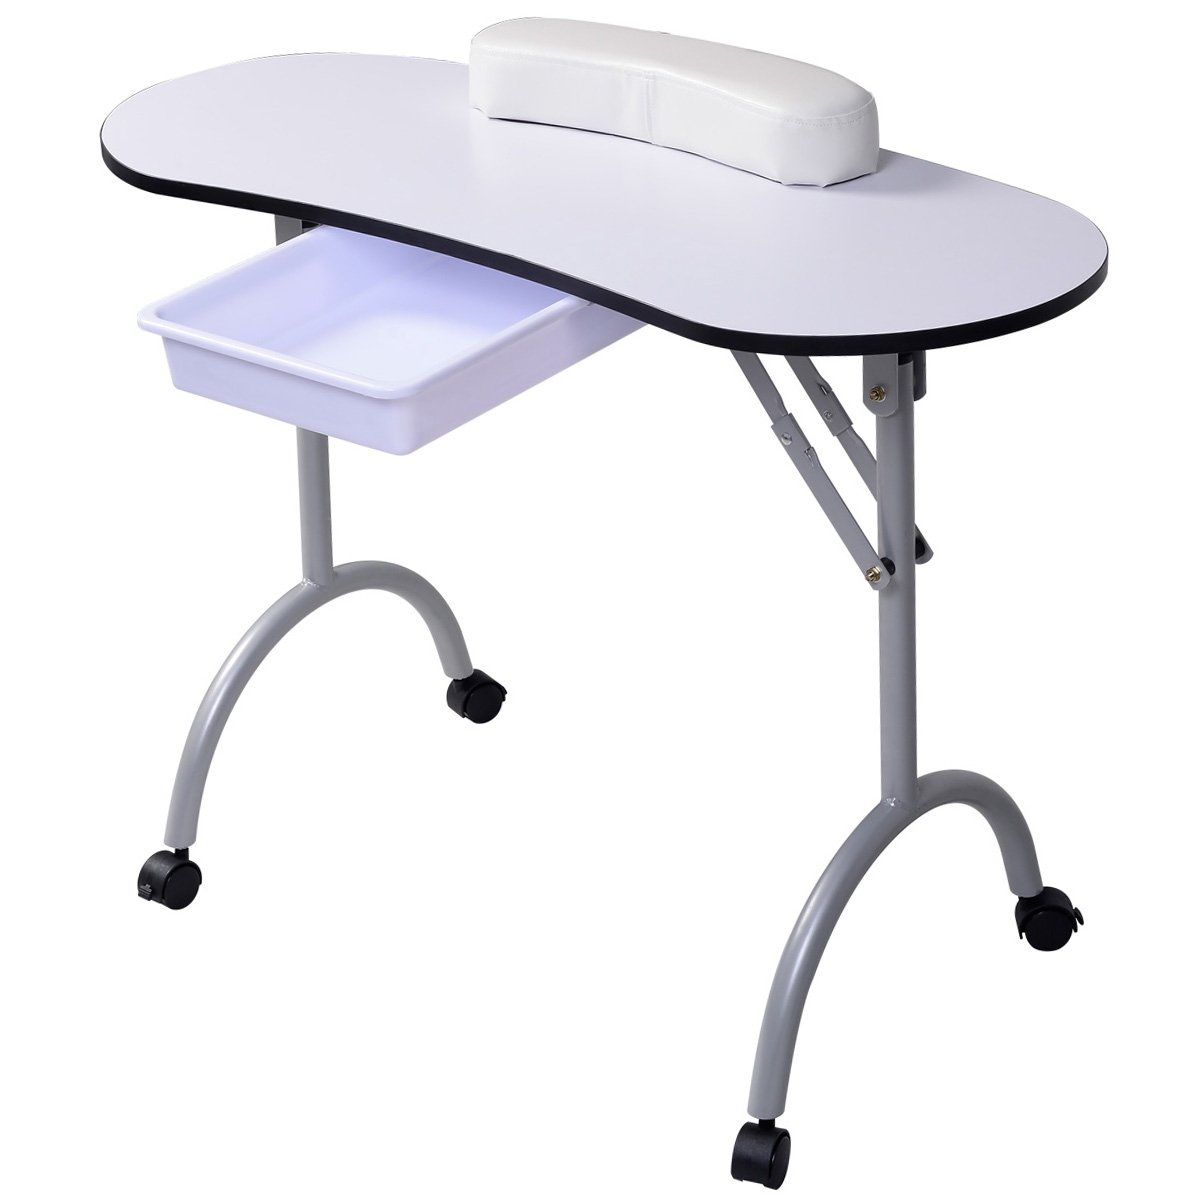 PROSPERLY U.S.Product White New Portable Manicure Nail Table Station Desk Spa Beauty Salon Equipment